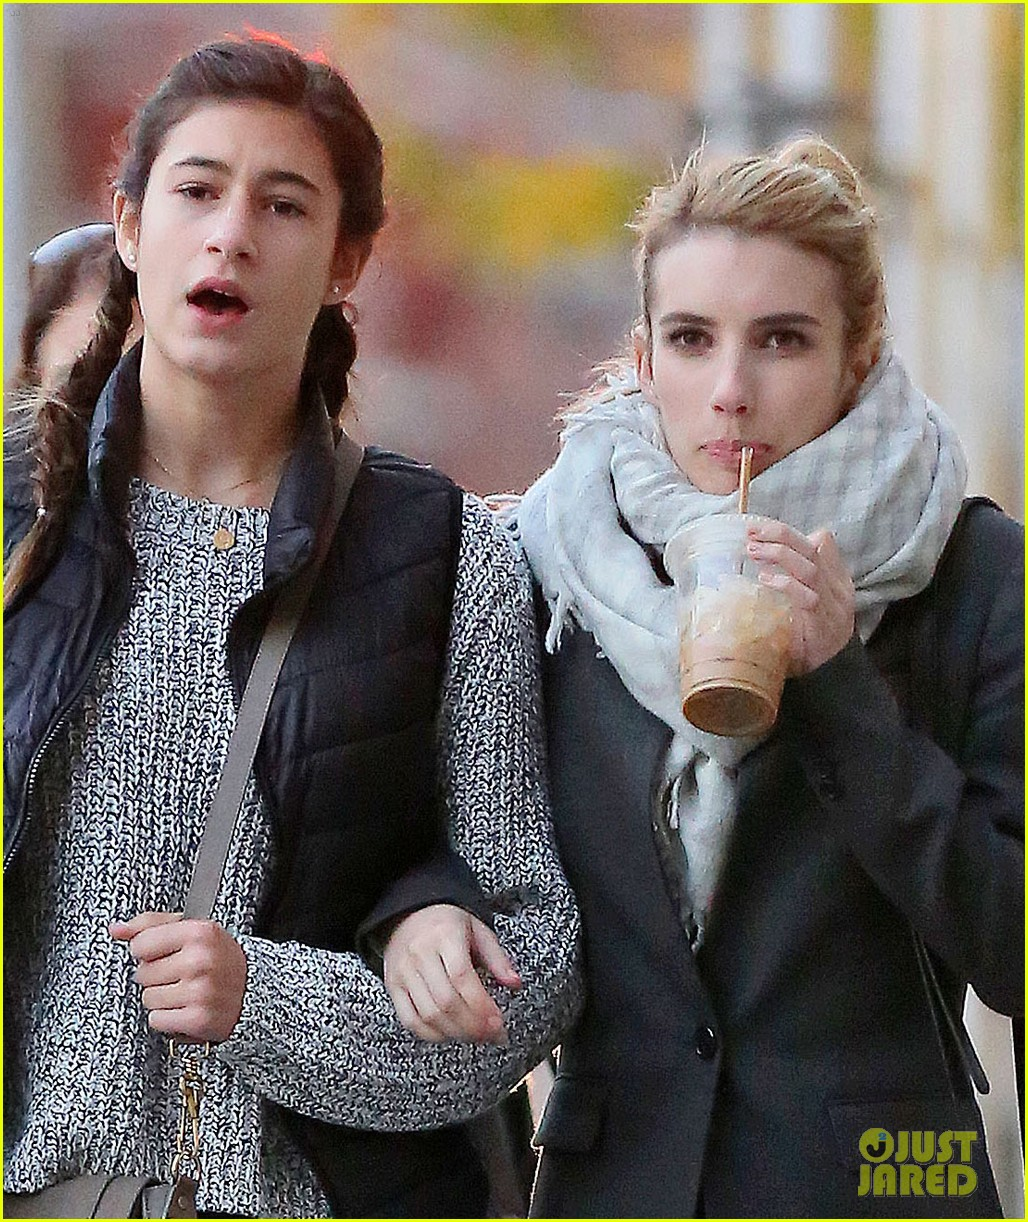 Emma Roberts Loves Listening To Taylor Swift S New Album Photo 3229404 Emma Roberts Pictures Just Jared